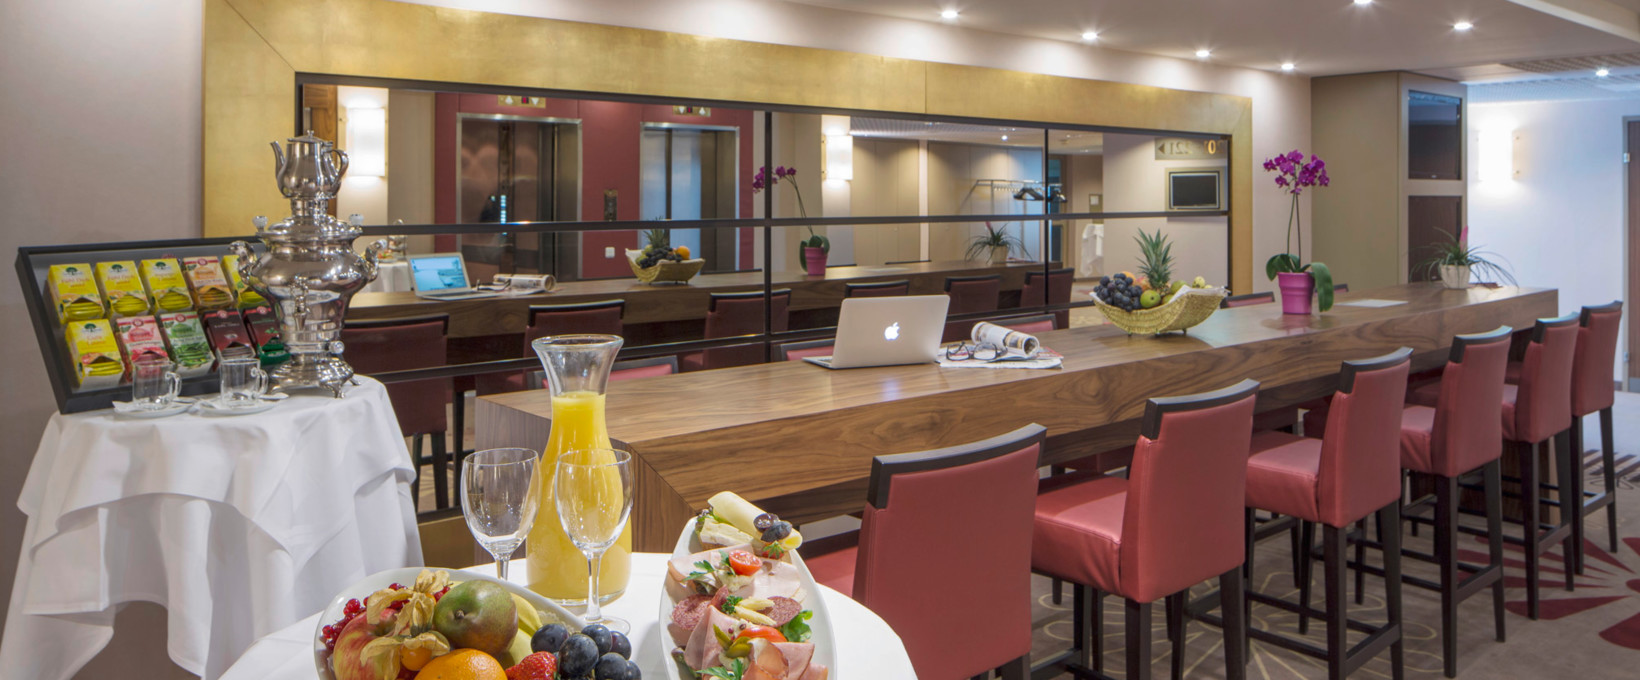 Bar with bar table, fruits and bun | Hotel Schillerpark in Linz